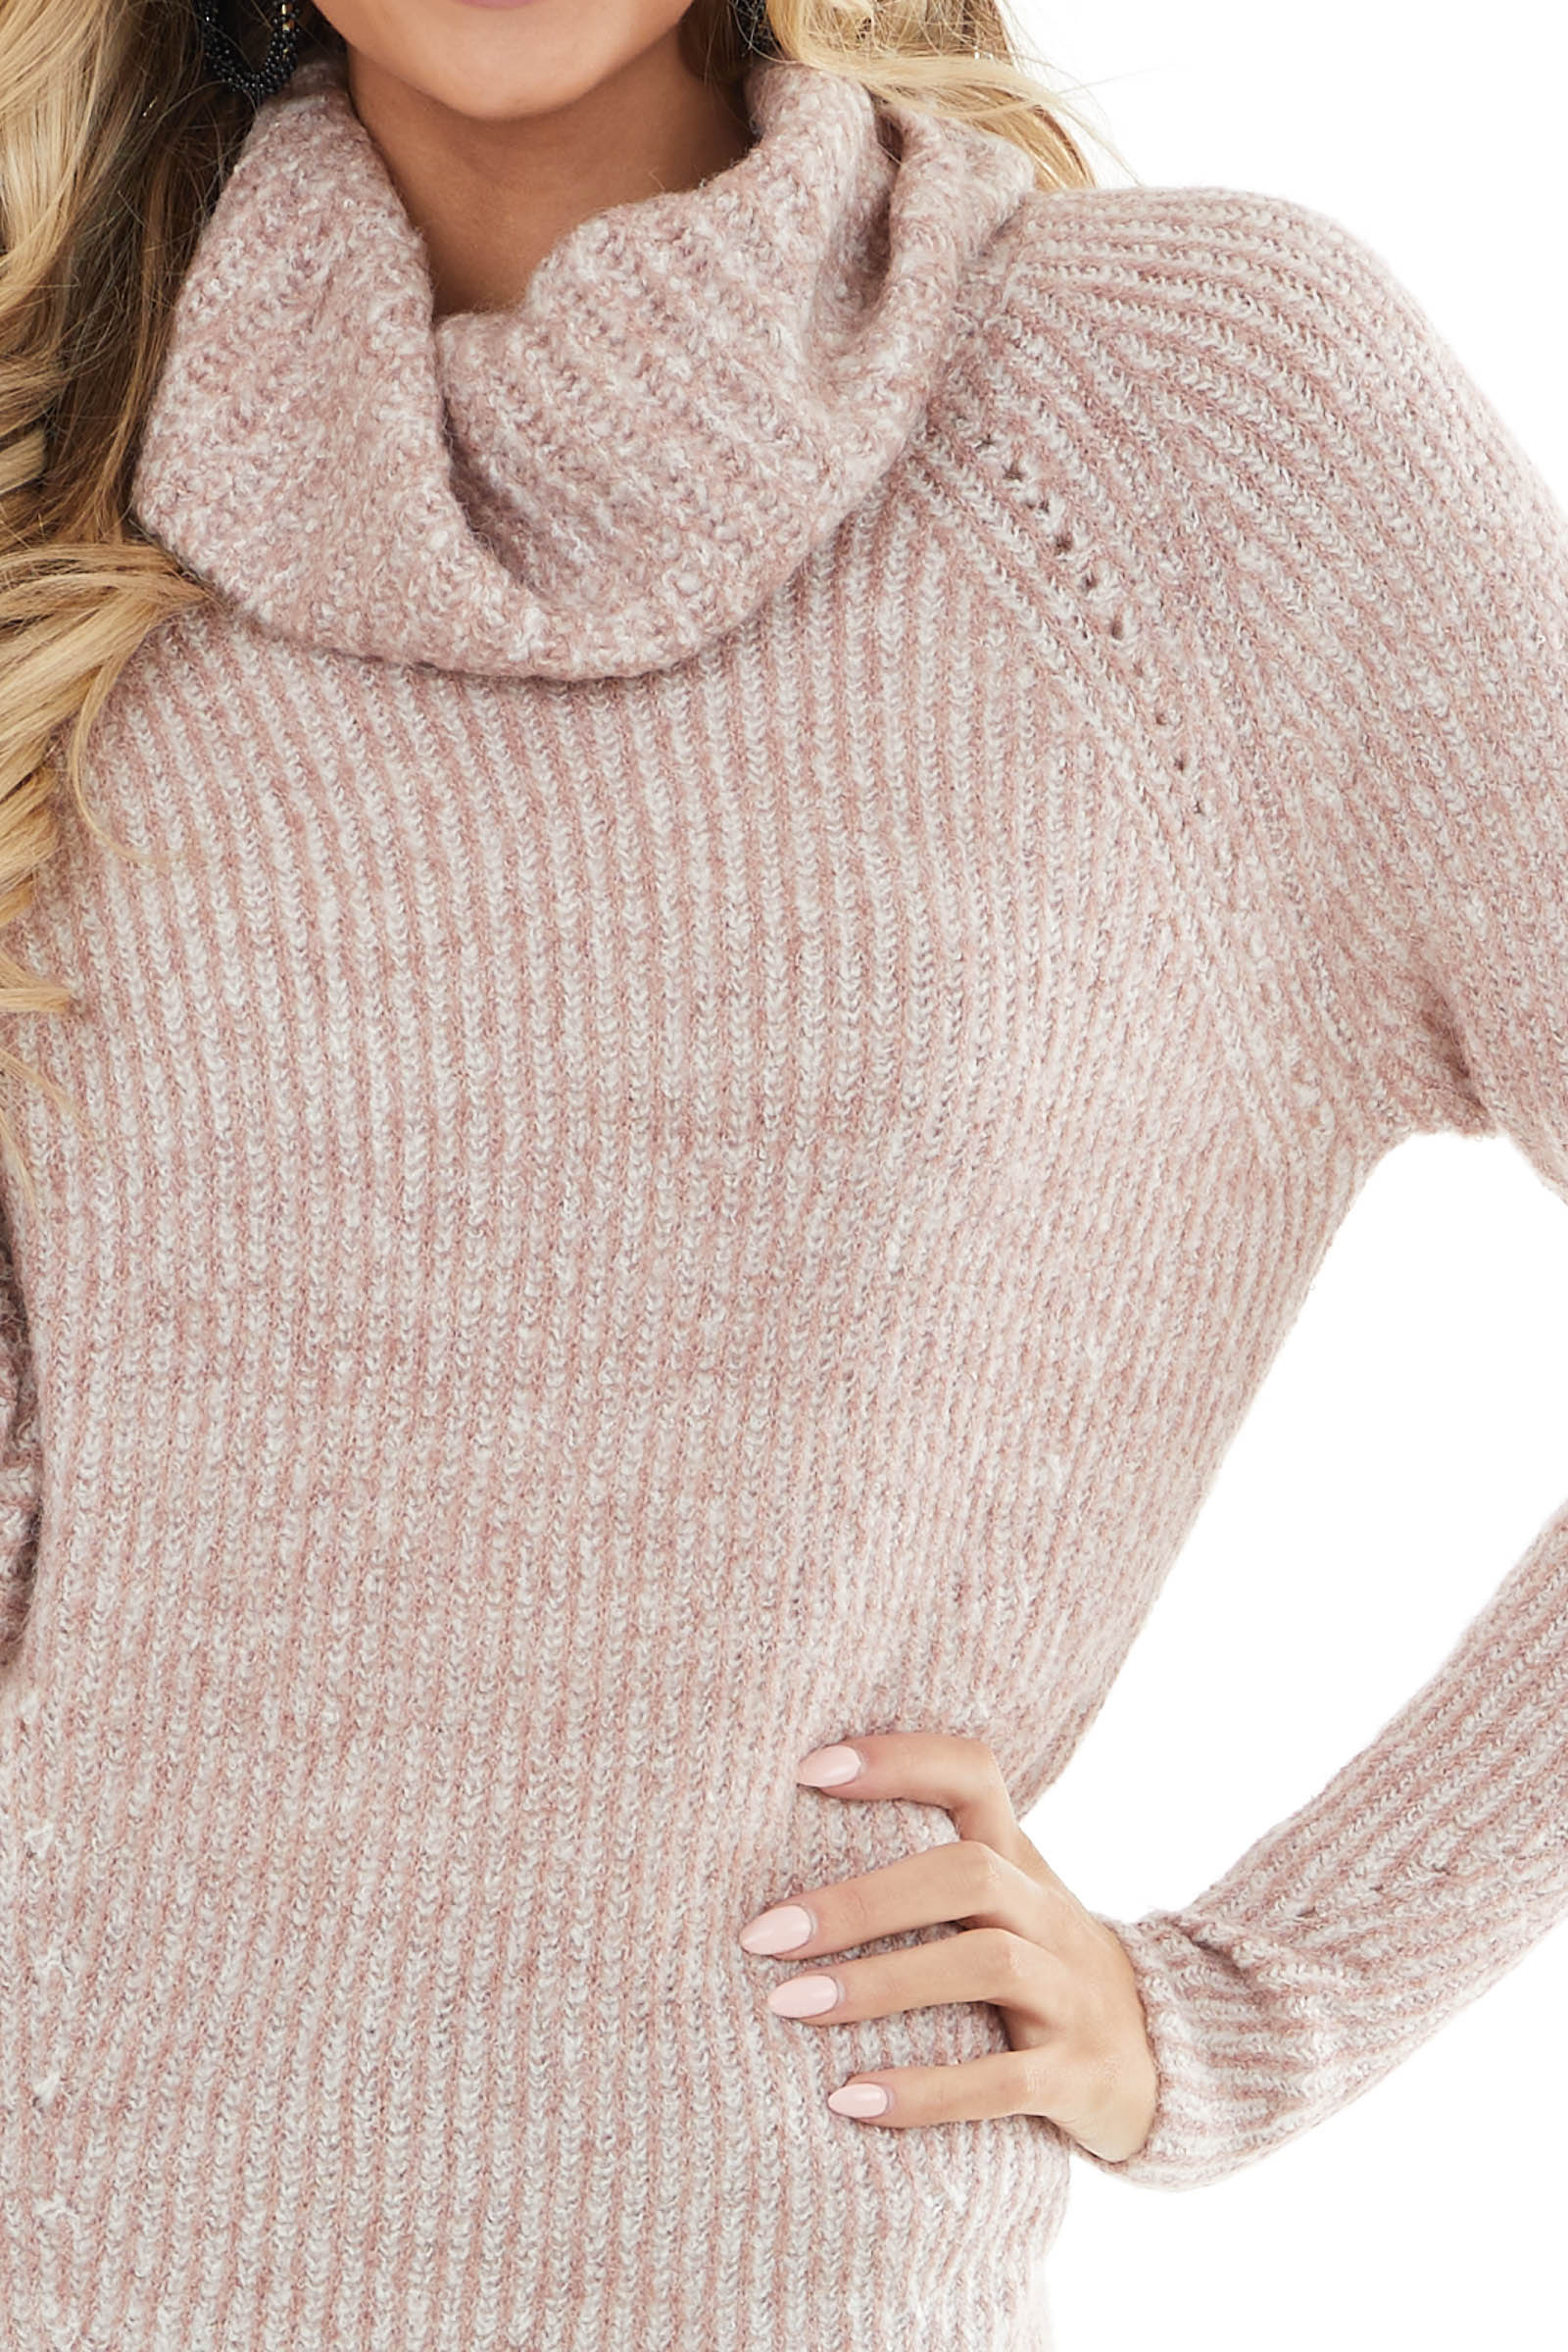 Dusty Rose and Ivory Striped Ribbed Knit Cowl Neck Sweater